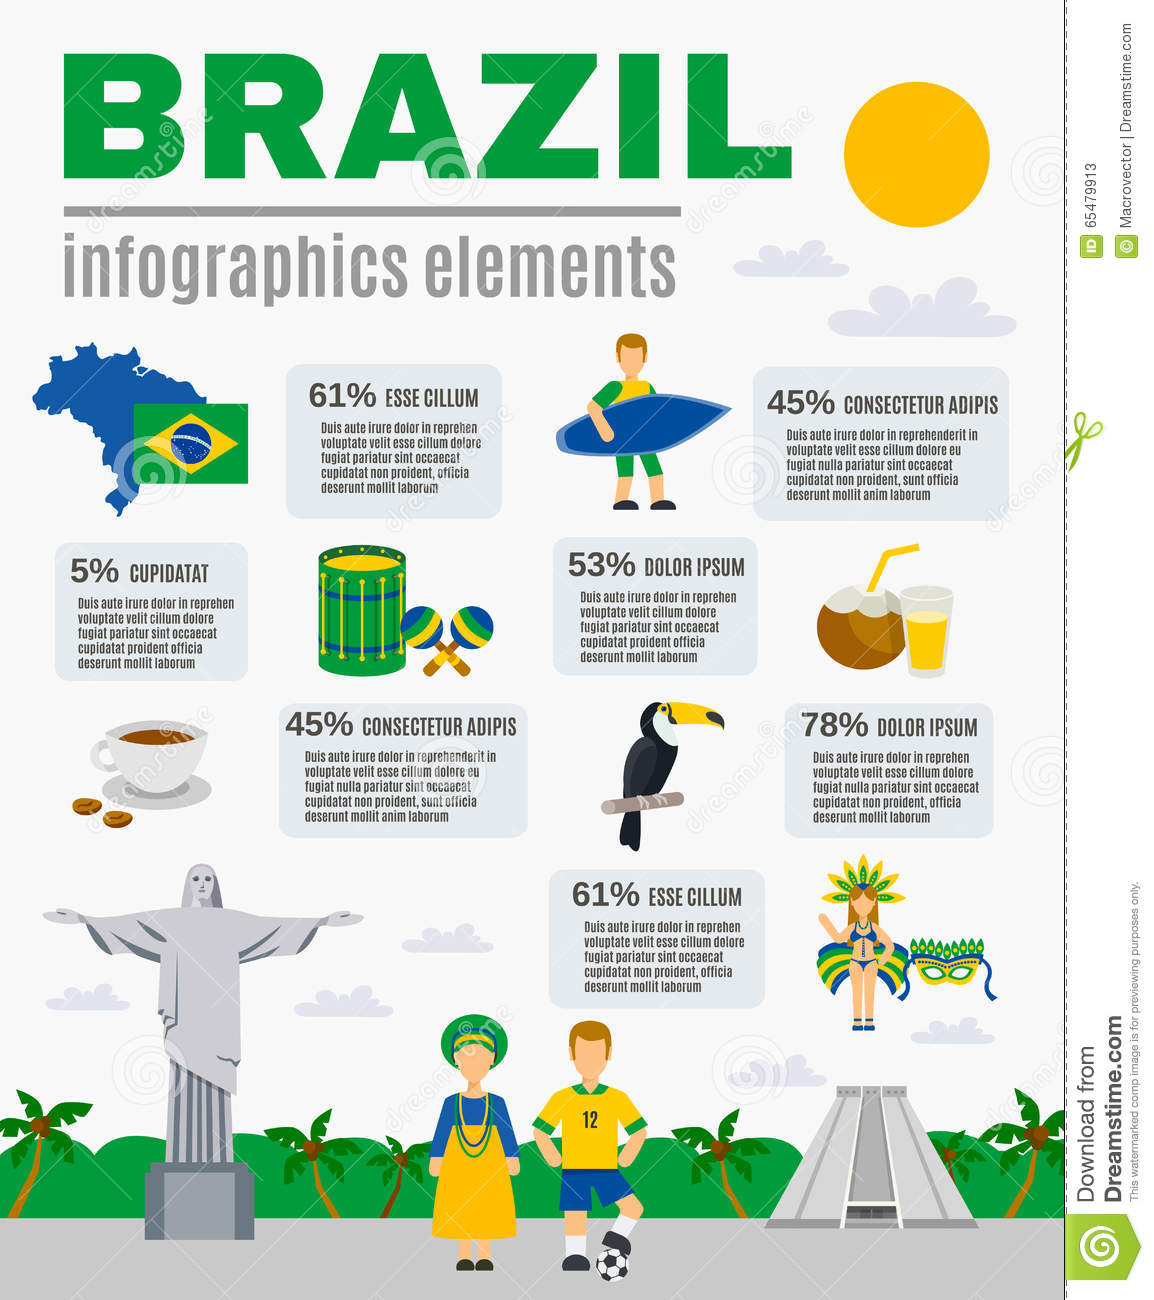 basic information about brazil Brazil is a member of the common market of the south (mercosur), a trade bloc that includes argentina, paraguay and uruguay - venezuela's membership in the organization was suspended in august 2017.